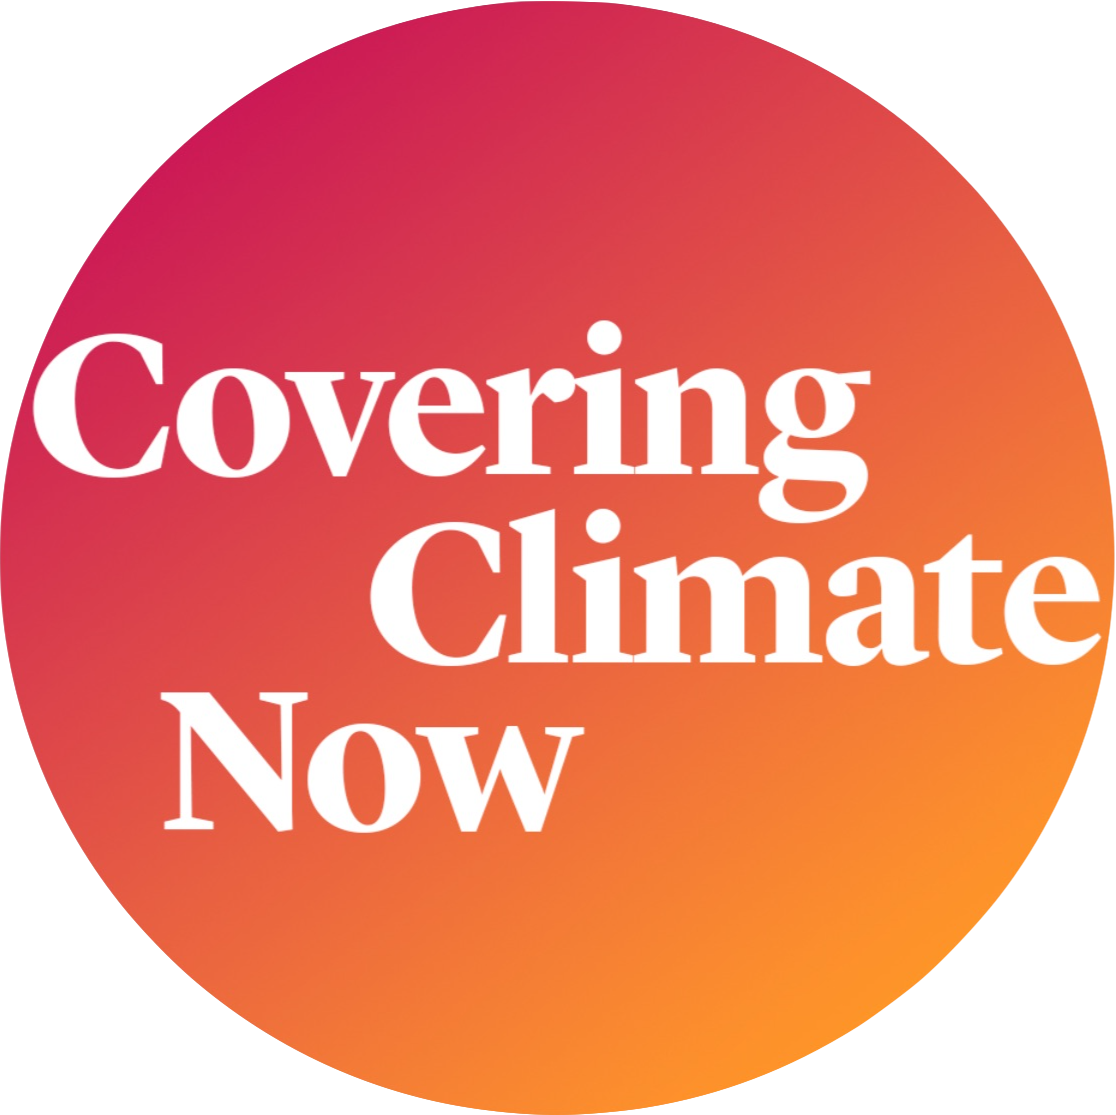 covering_climate_now_logo.png